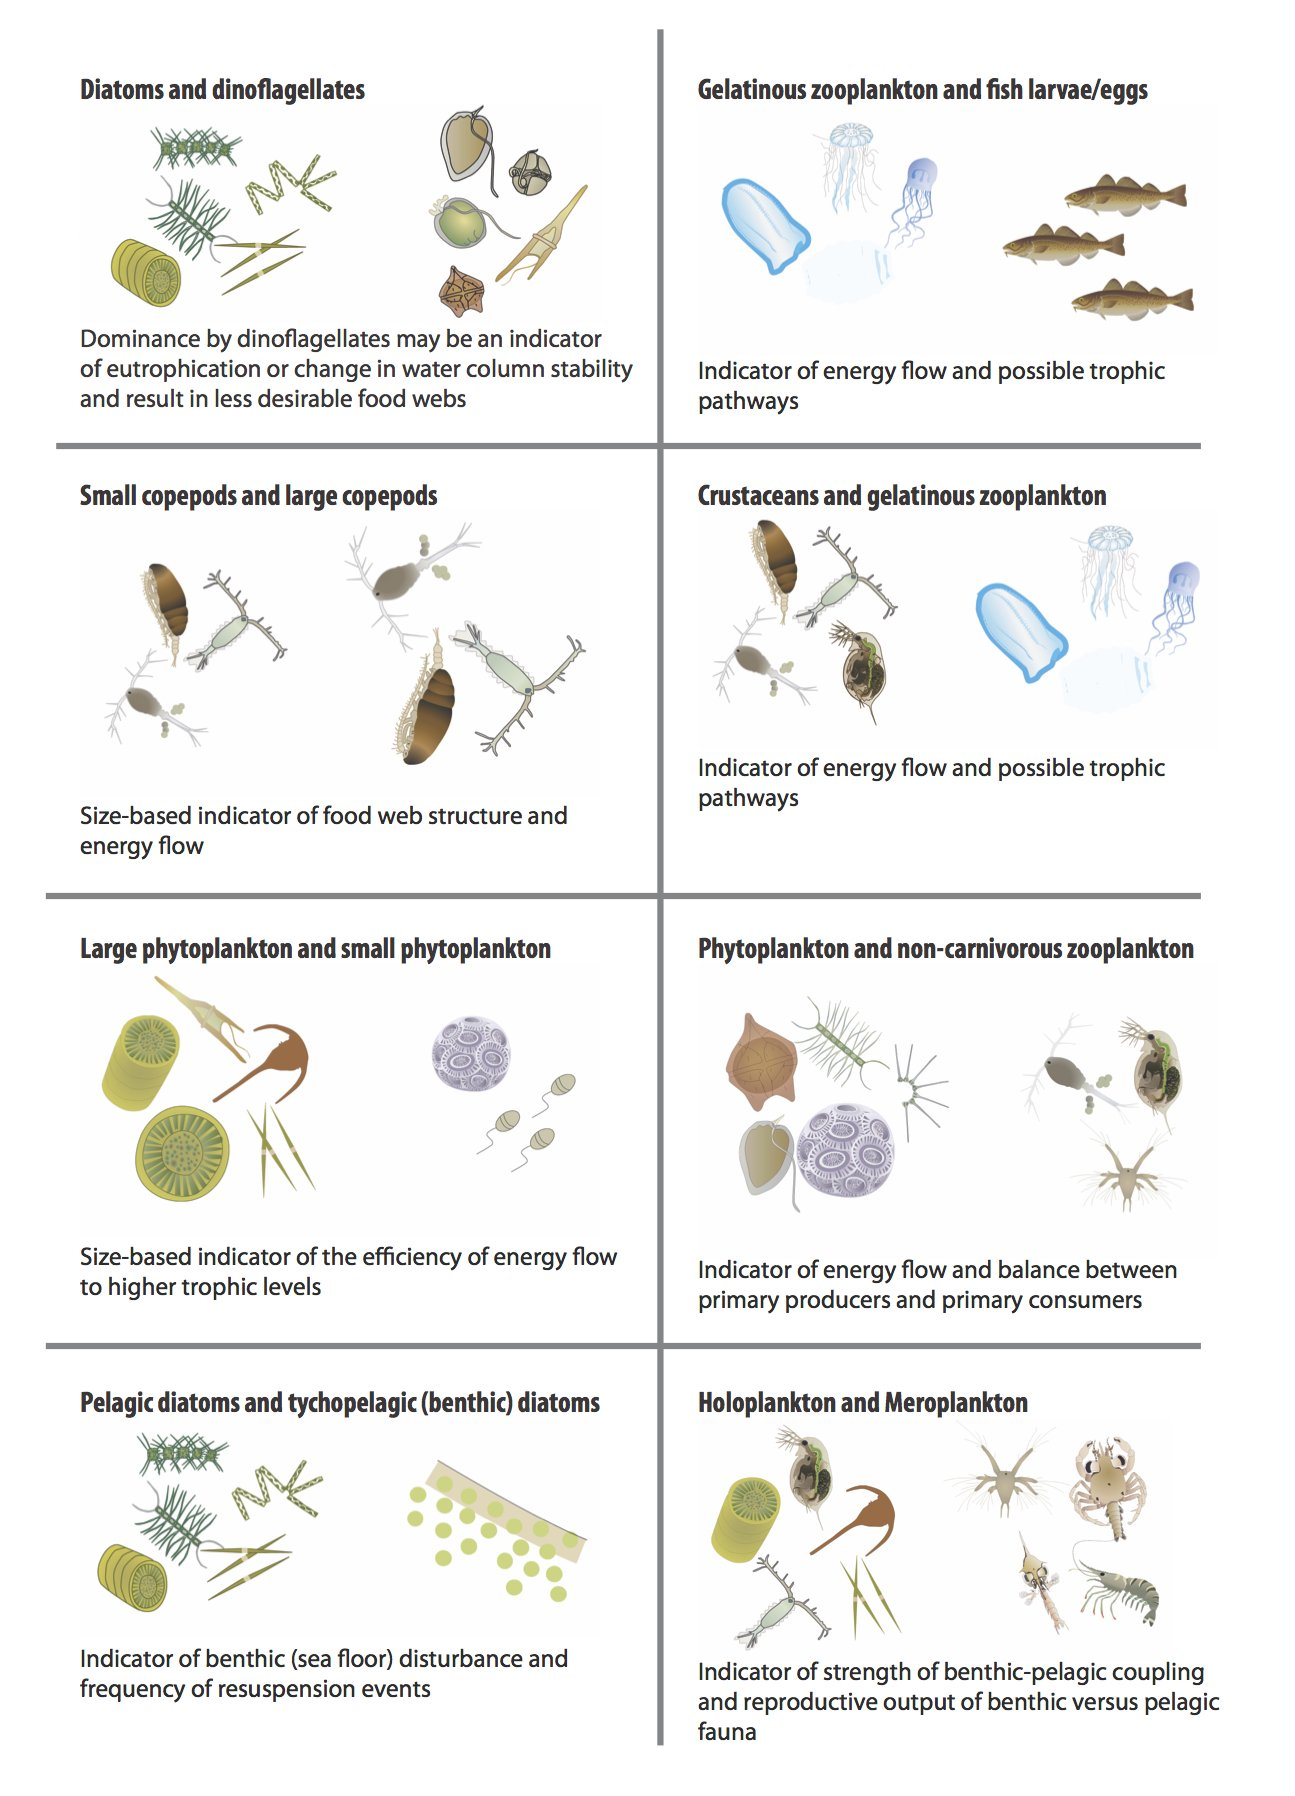 Changes In Phytoplankton And Zooplankton Communities